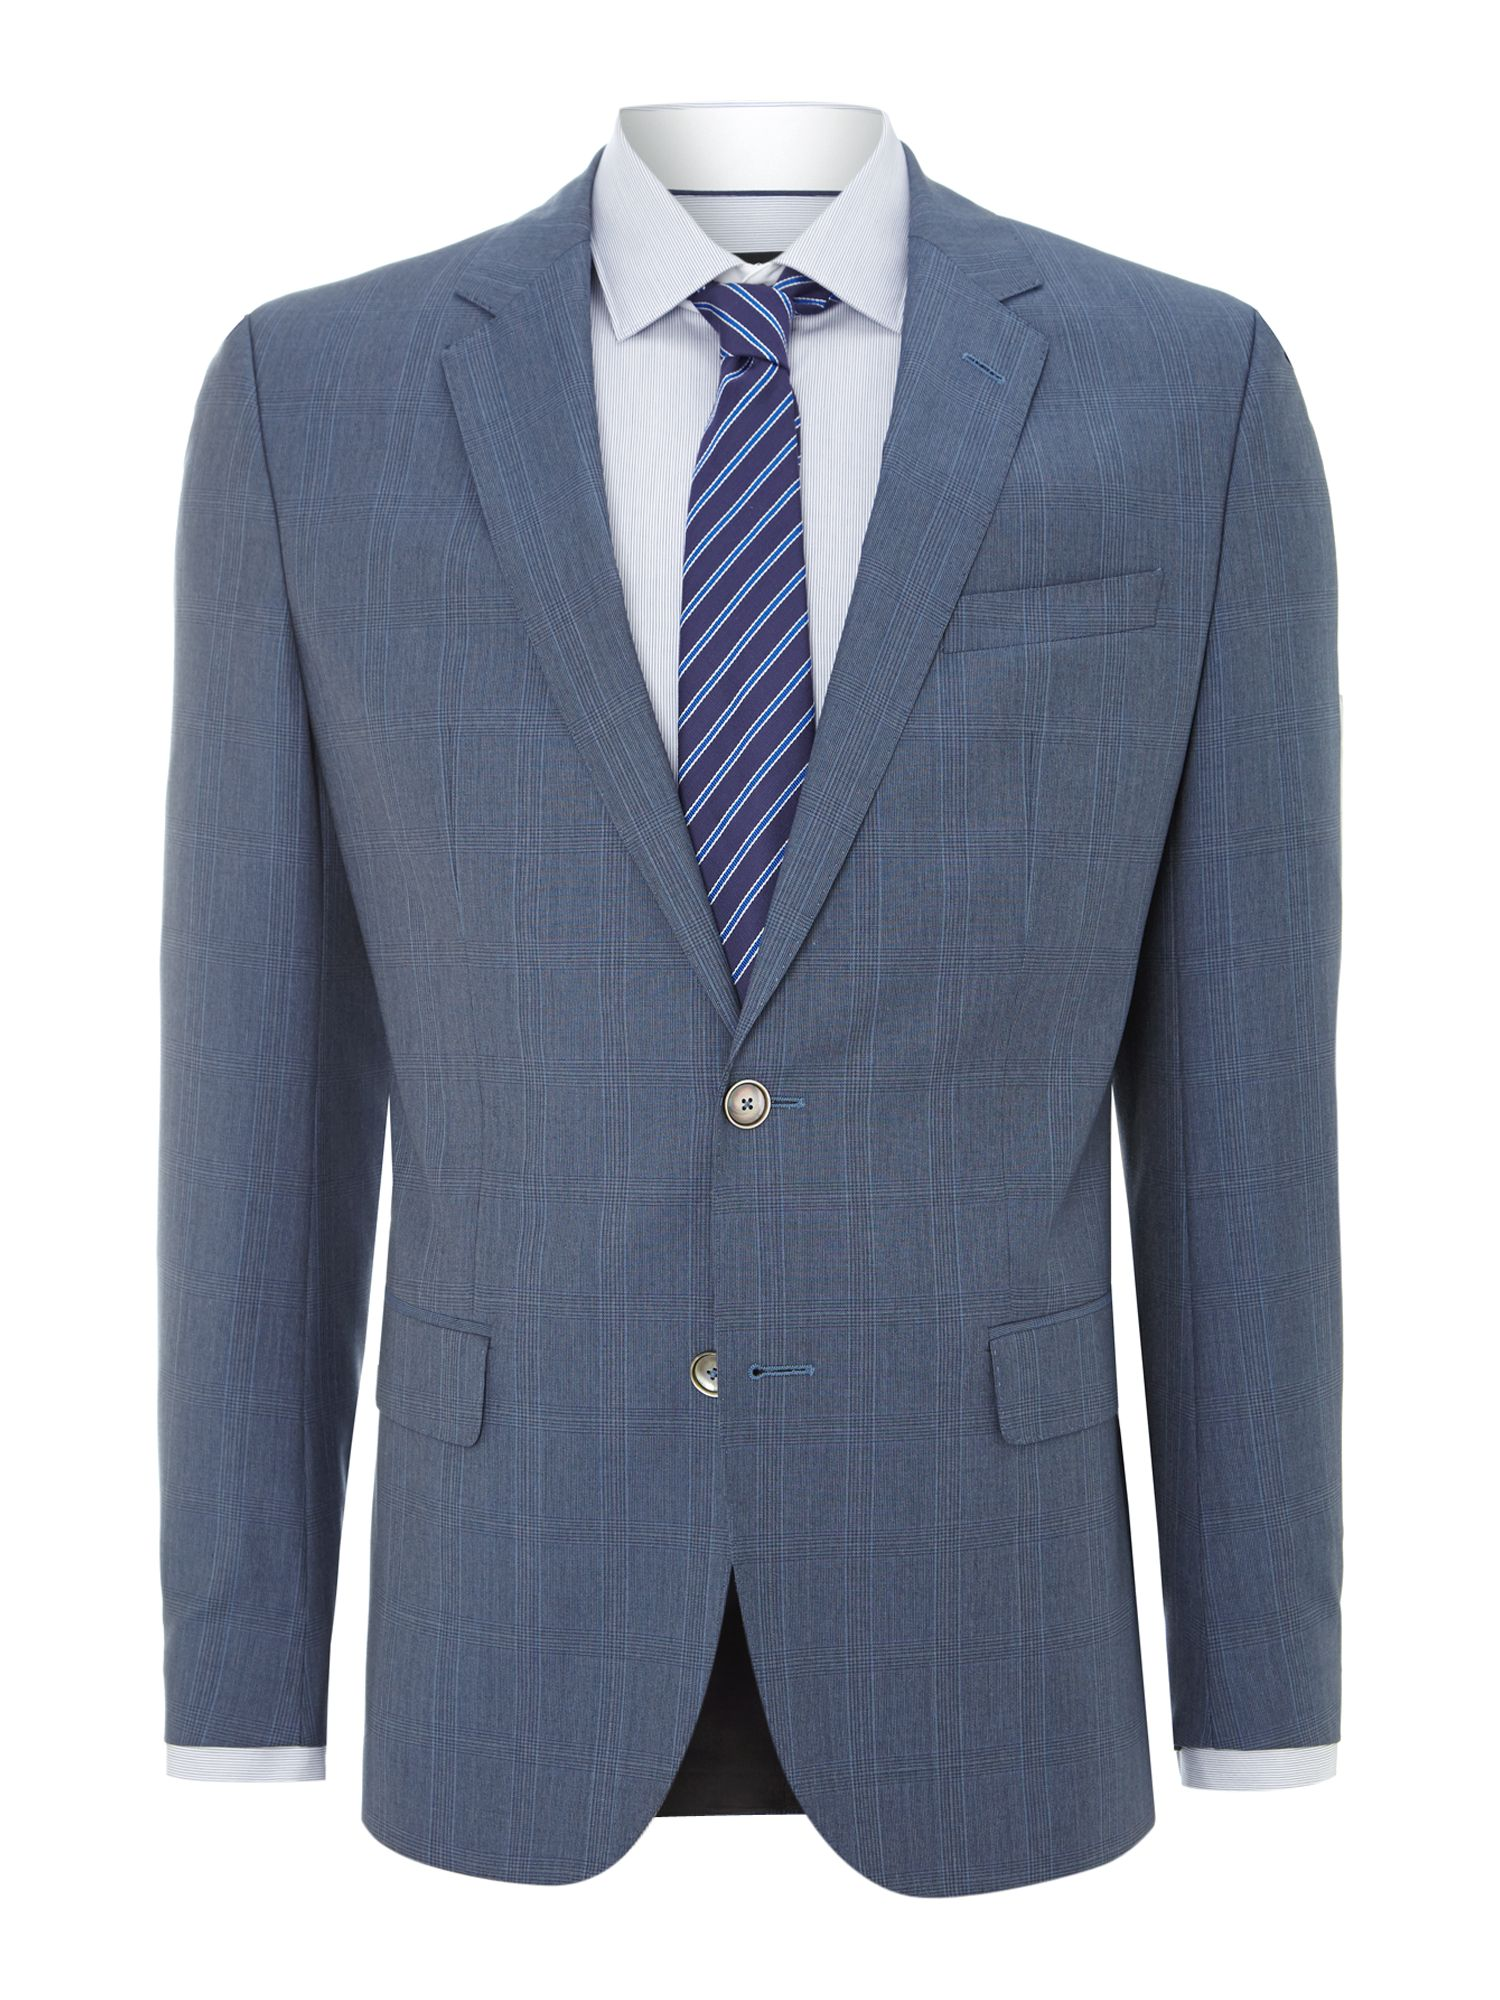 Hutson Gander slim fit PrinceofWales check suit